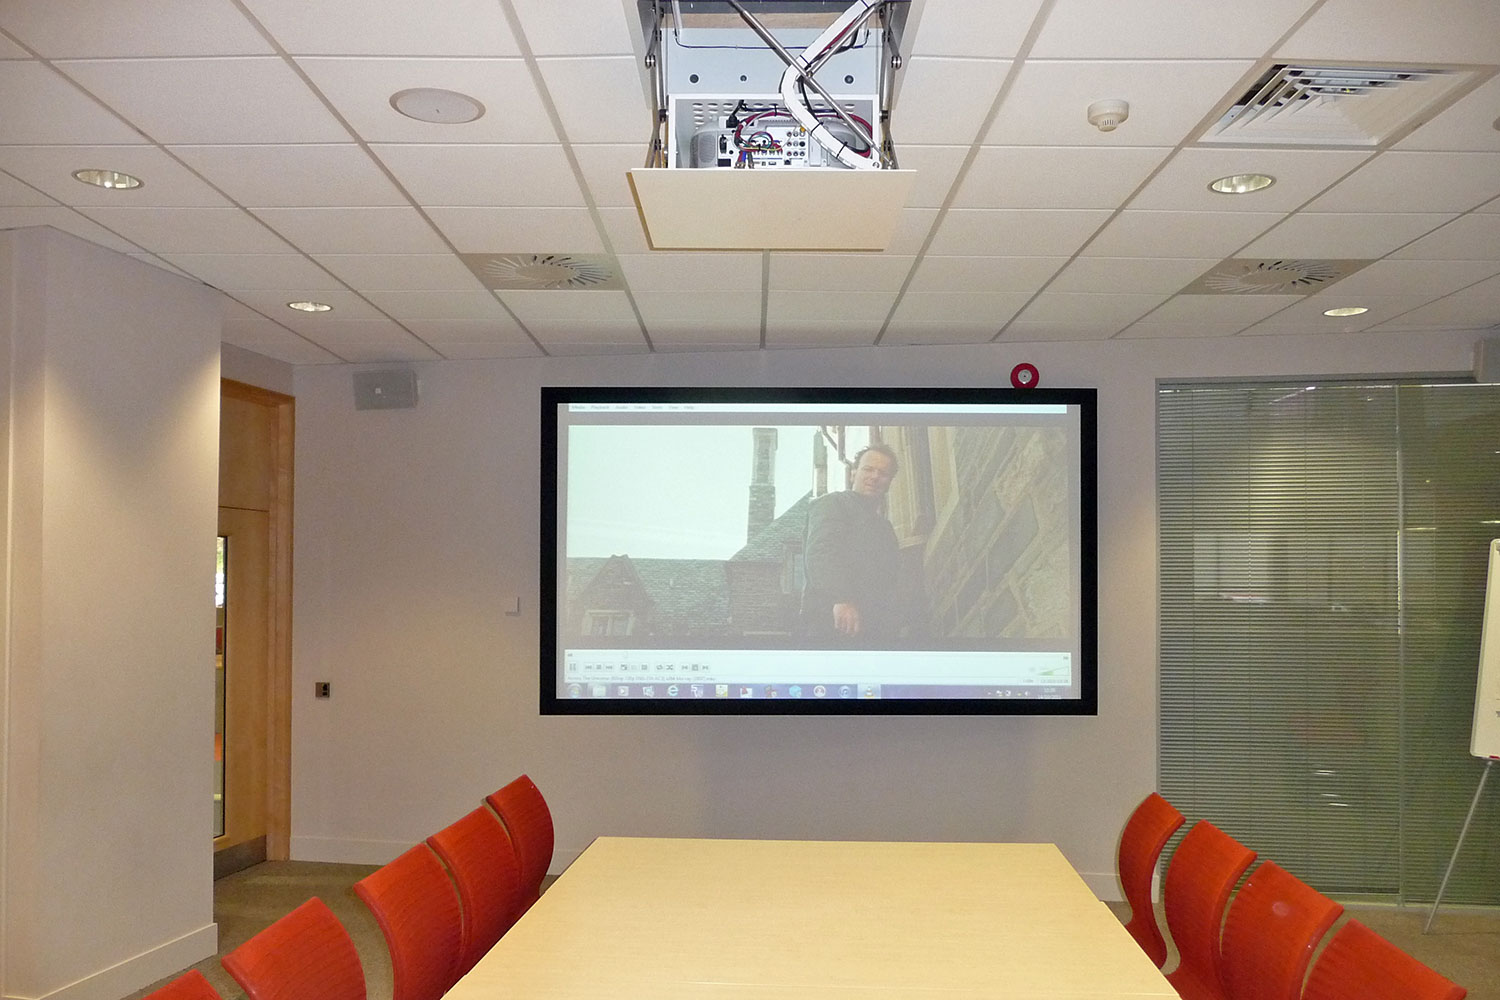 tui training projector demonstration